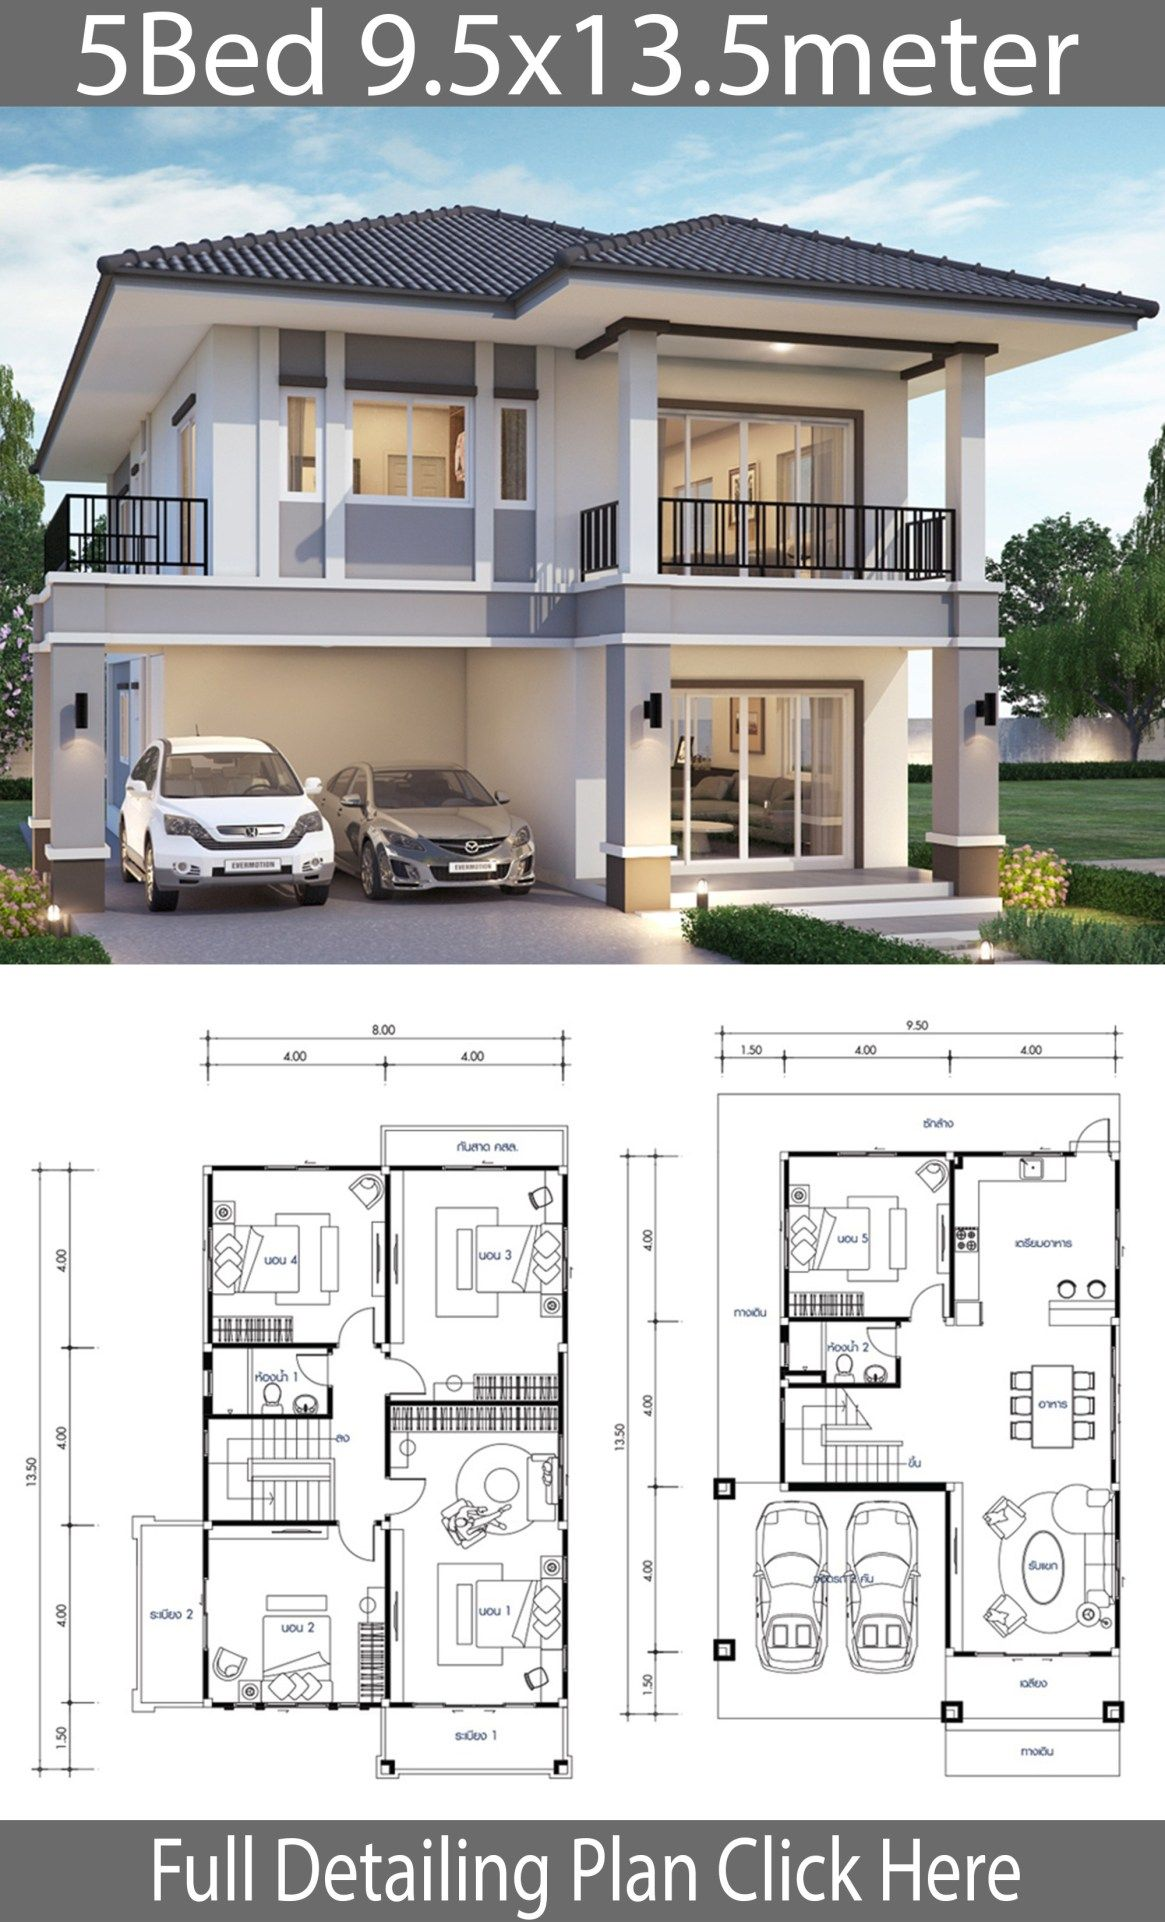 House Design 9 5x13 5m With 5 Bedrooms Home Design With Plansearch Duplex House Design Modern House Plans Model House Plan